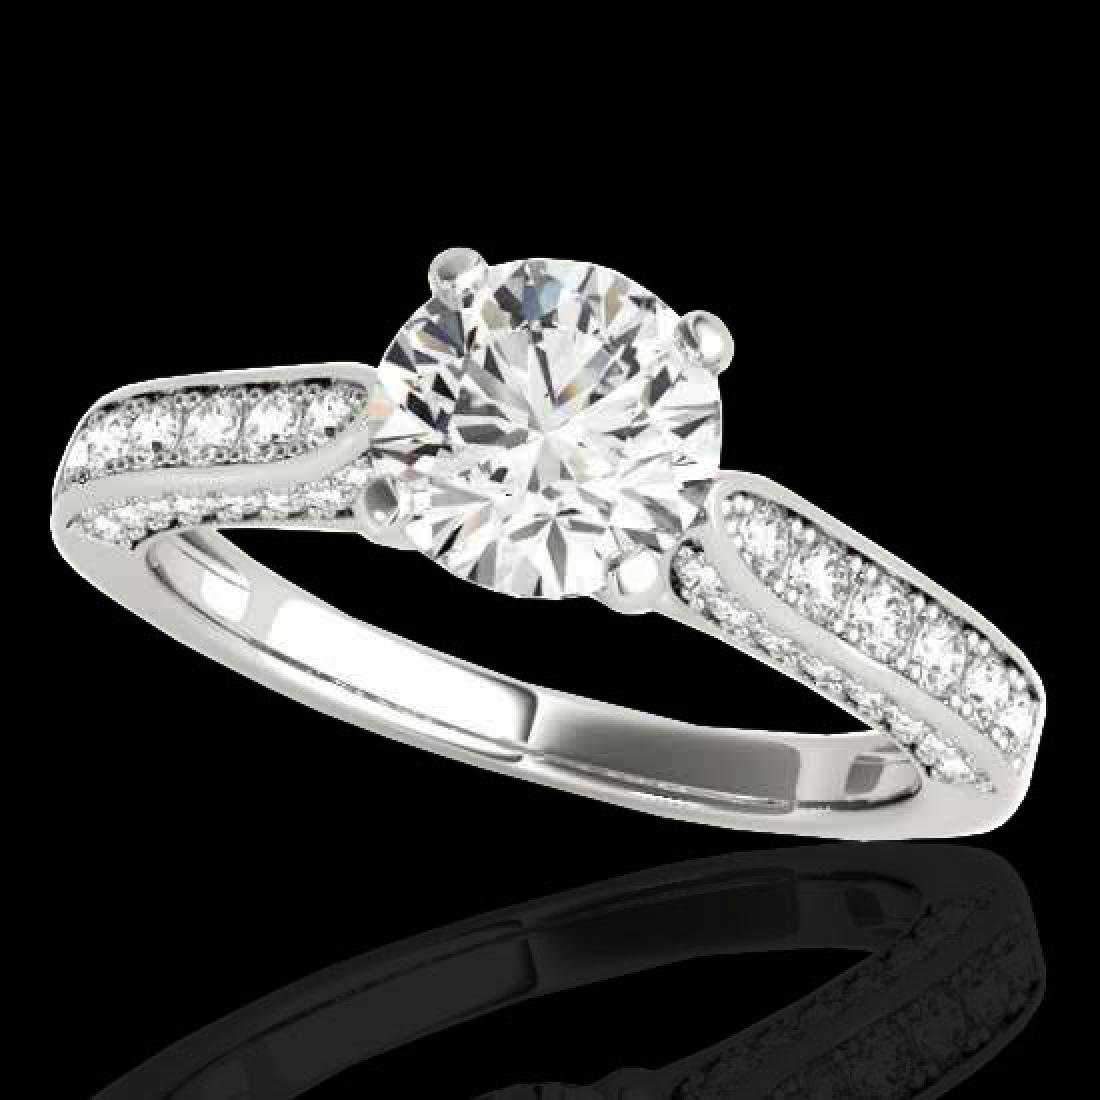 1.6 CTW H-SI/I Certified Diamond Solitaire Ring 10K